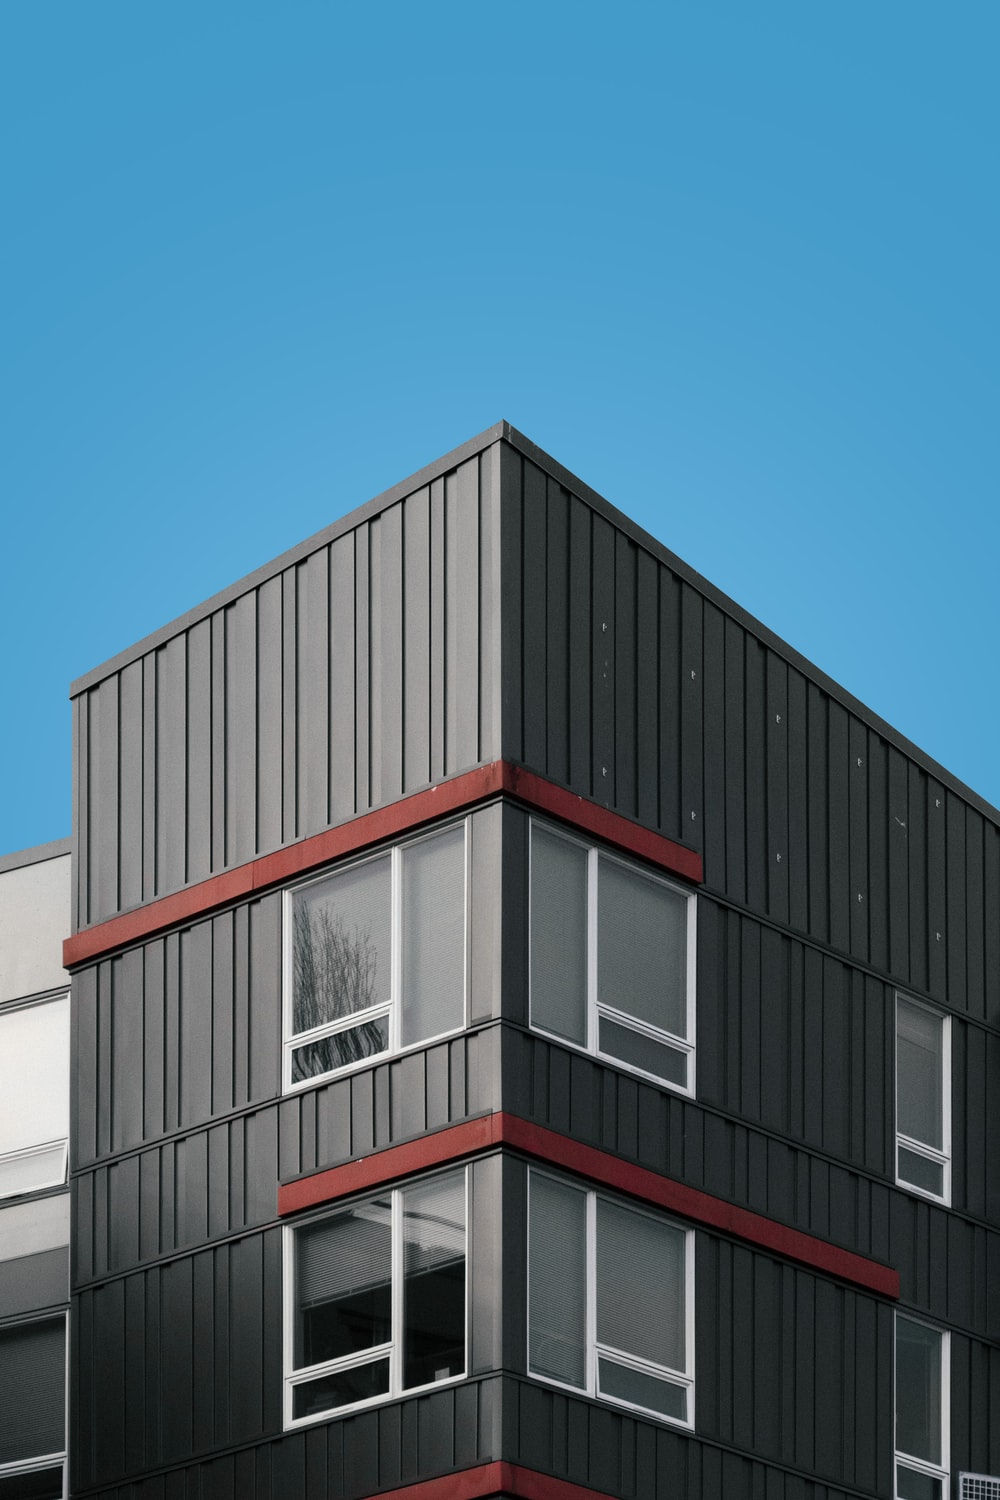 white and red concrete building under blue sky during daytime